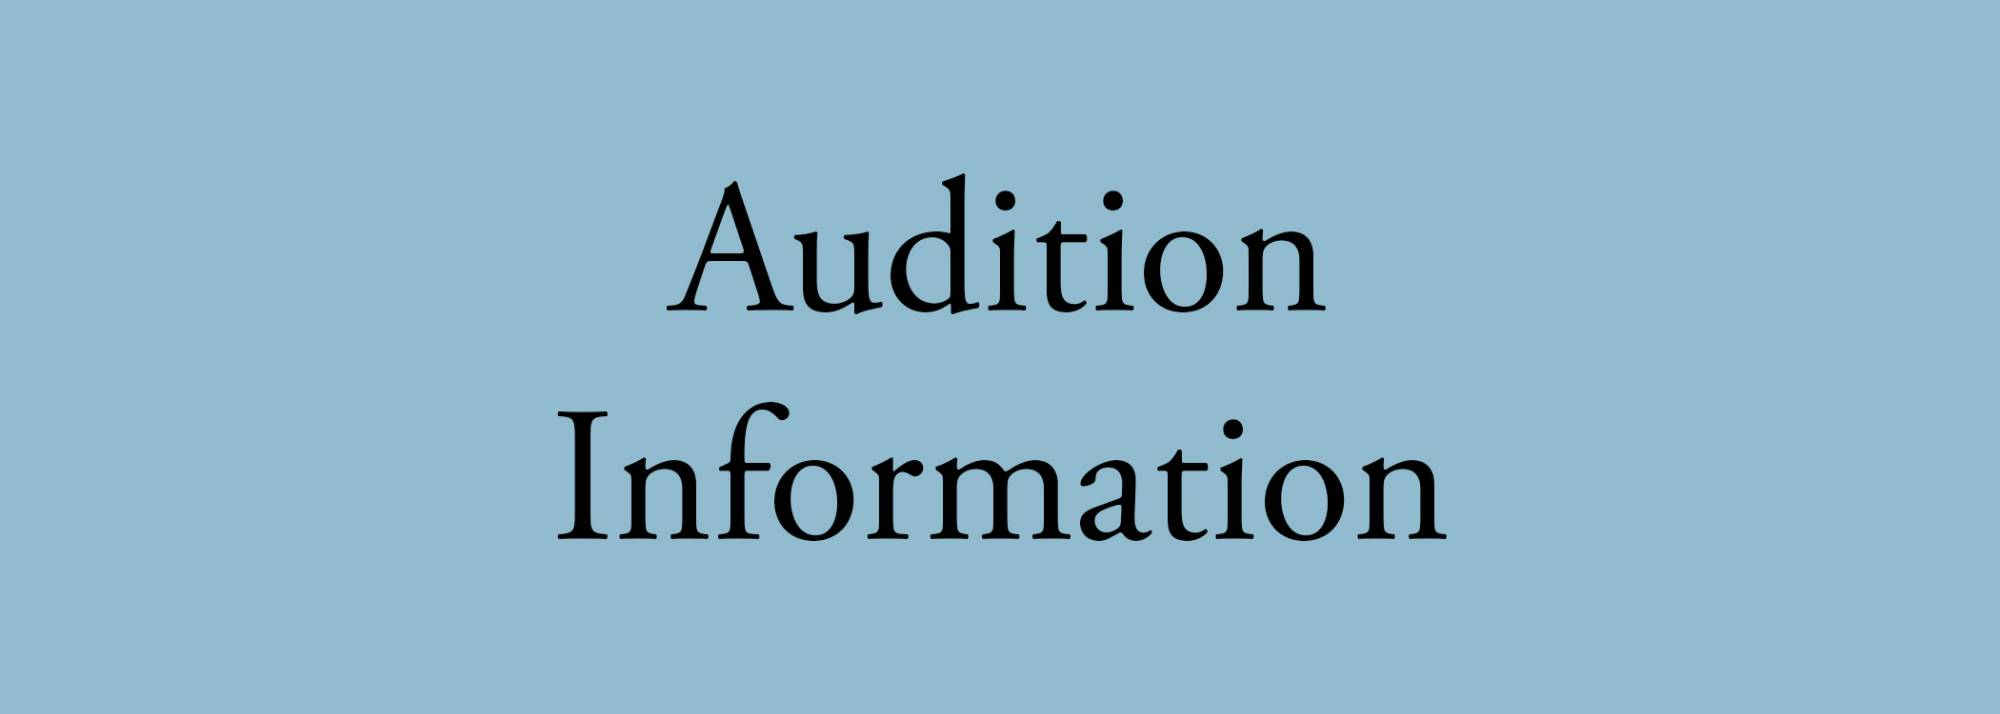 dance audition info button